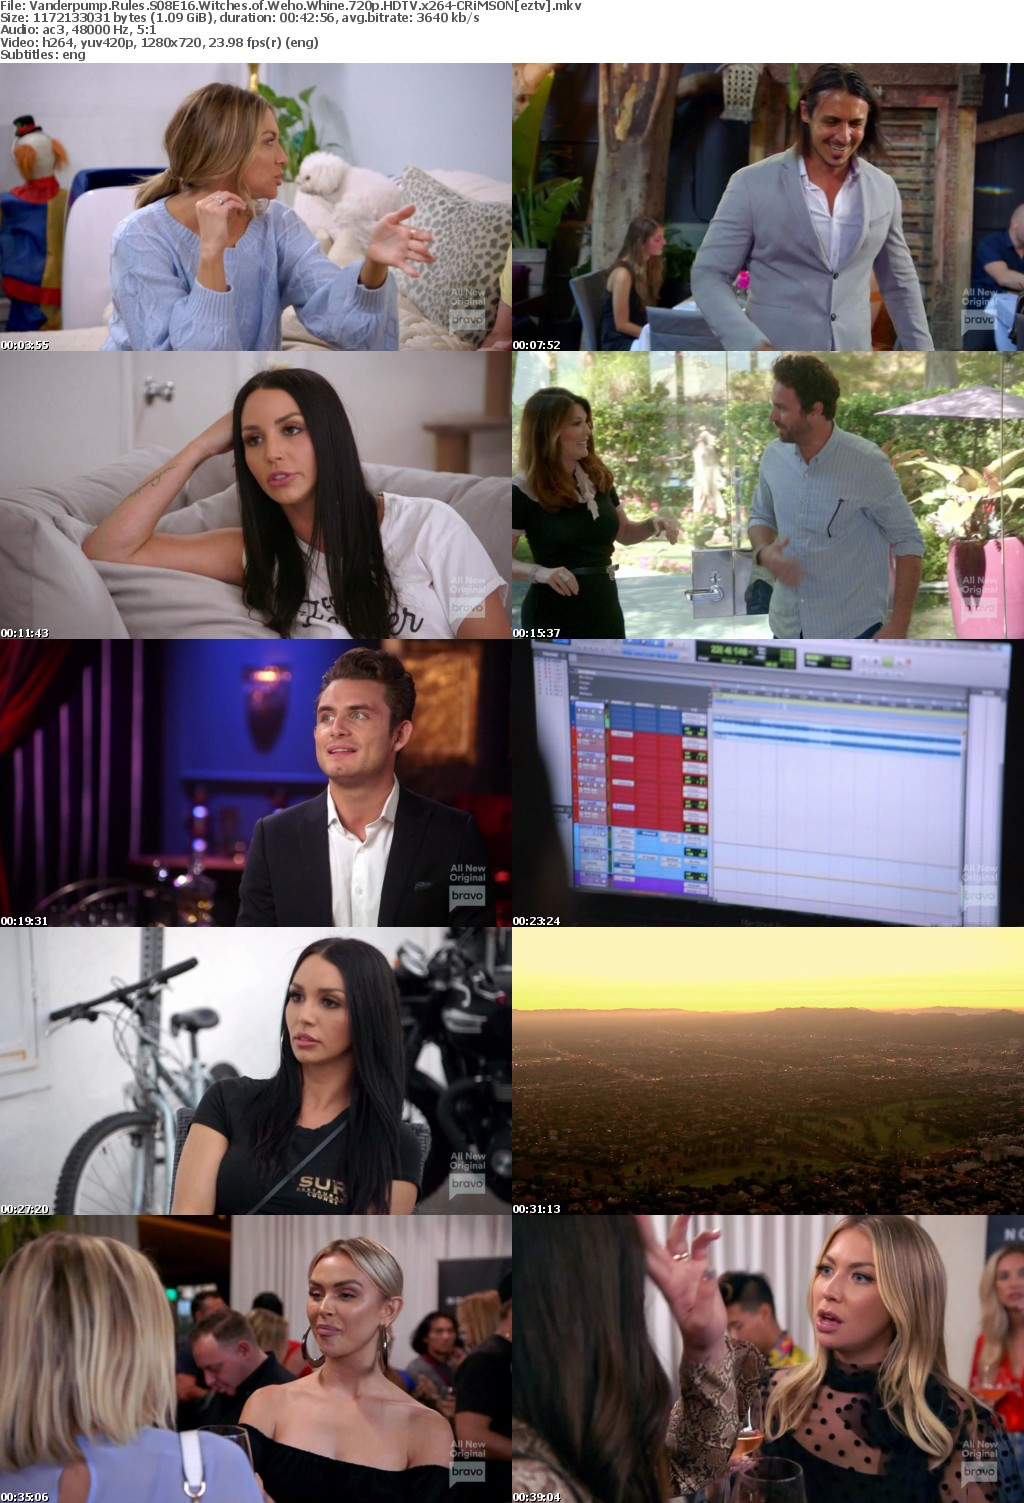 Vanderpump Rules S08E16 Witches of Weho Whine 720p HDTV x264-CRiMSON